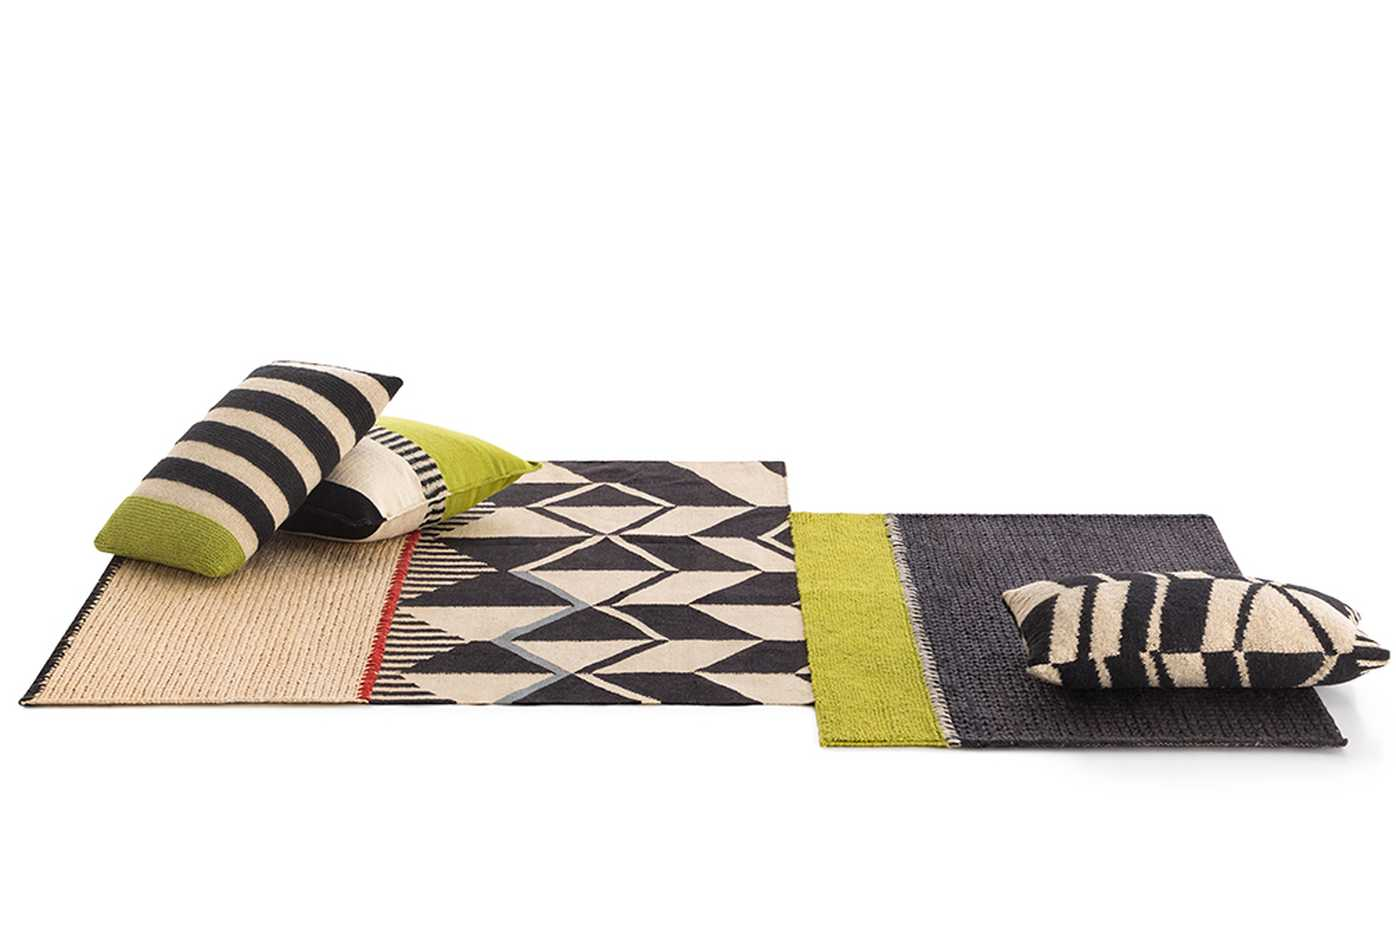 Rustic Chic Rugs by Gan Rugs product image 4